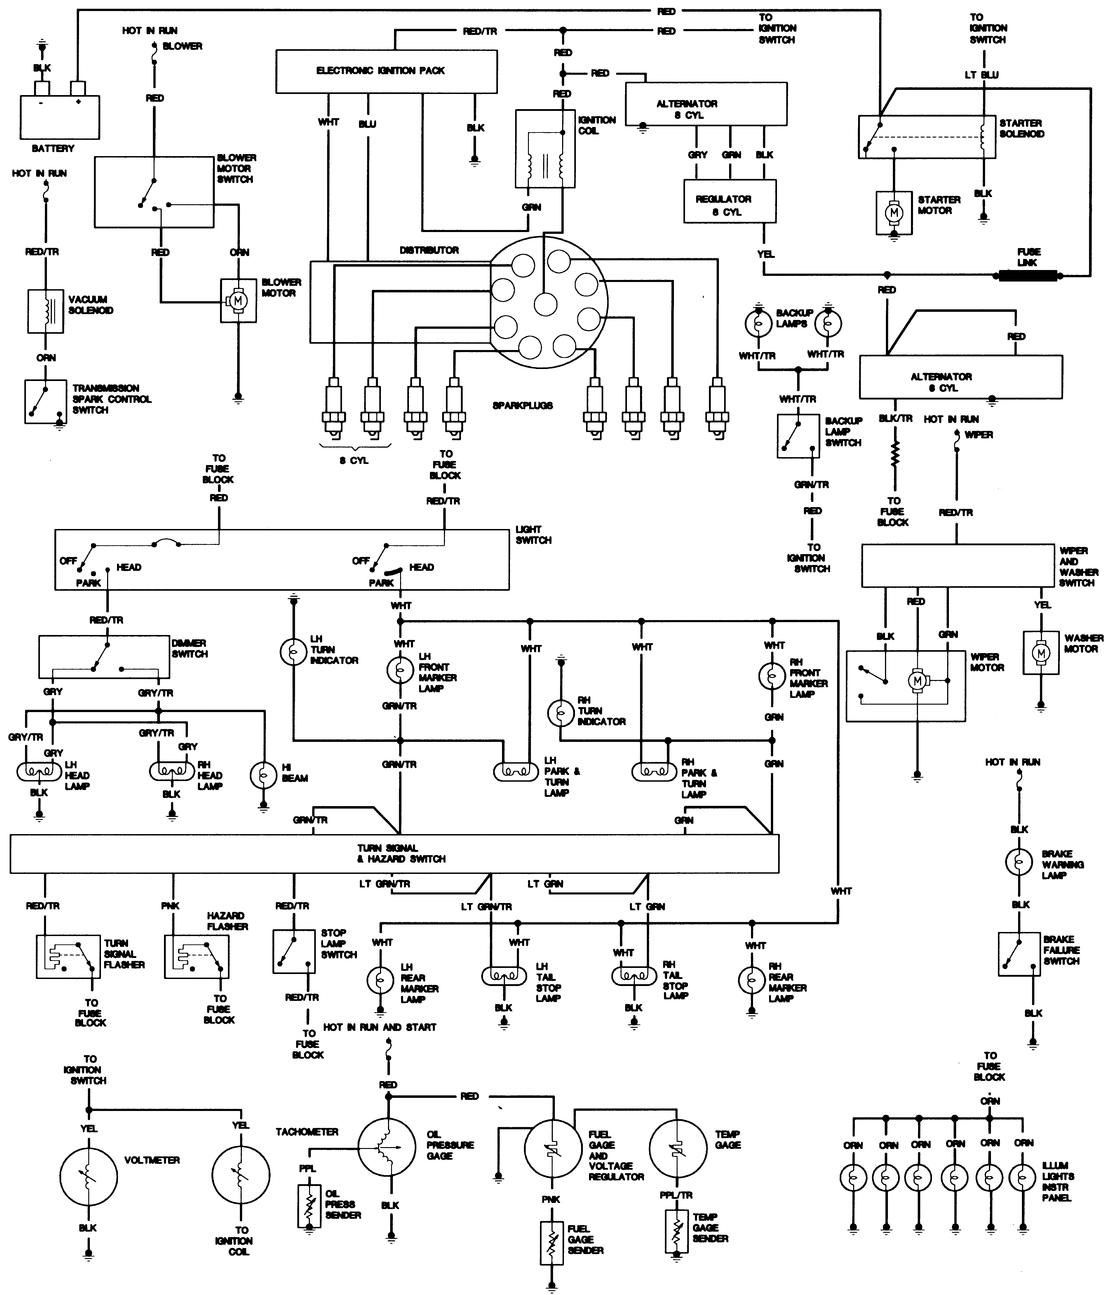 1955 Willys Jeep Wiring Schematic - Cadet Heater 240 Volt Wiring Diagram  for Wiring Diagram SchematicsWiring Diagram Schematics